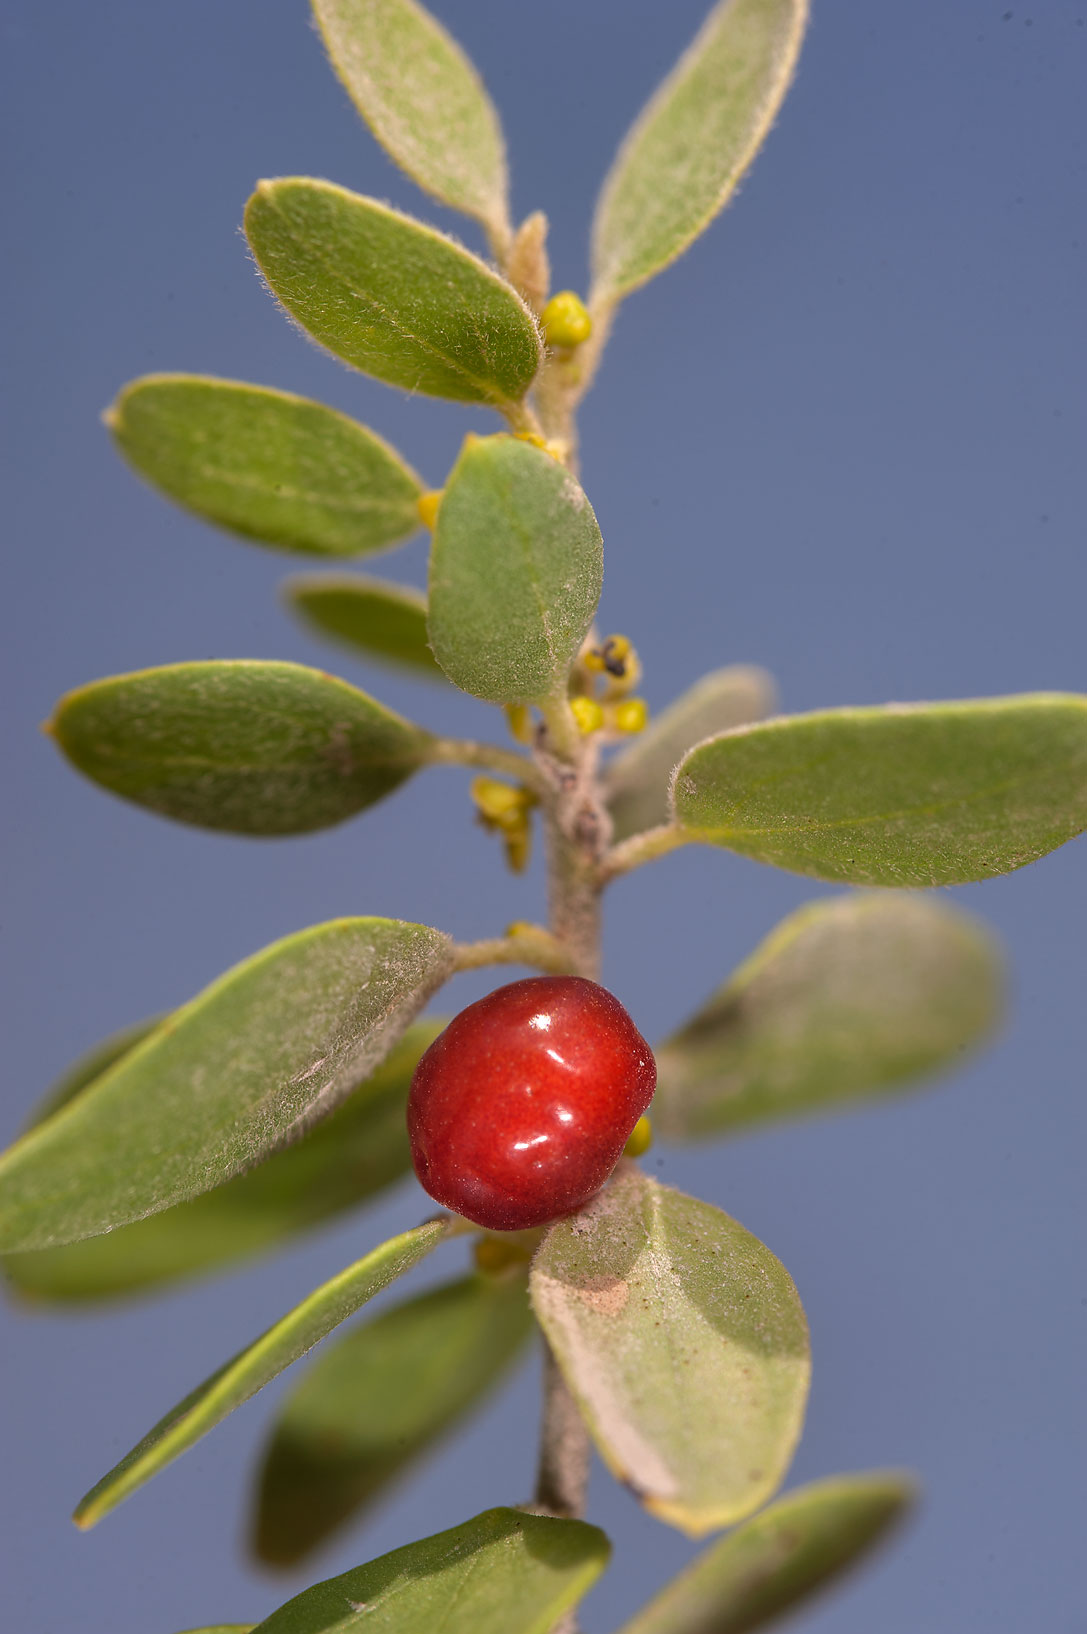 Red berry on a vine of Cocculus pendulus (local...Kiranah), south-west from Doha. Qatar